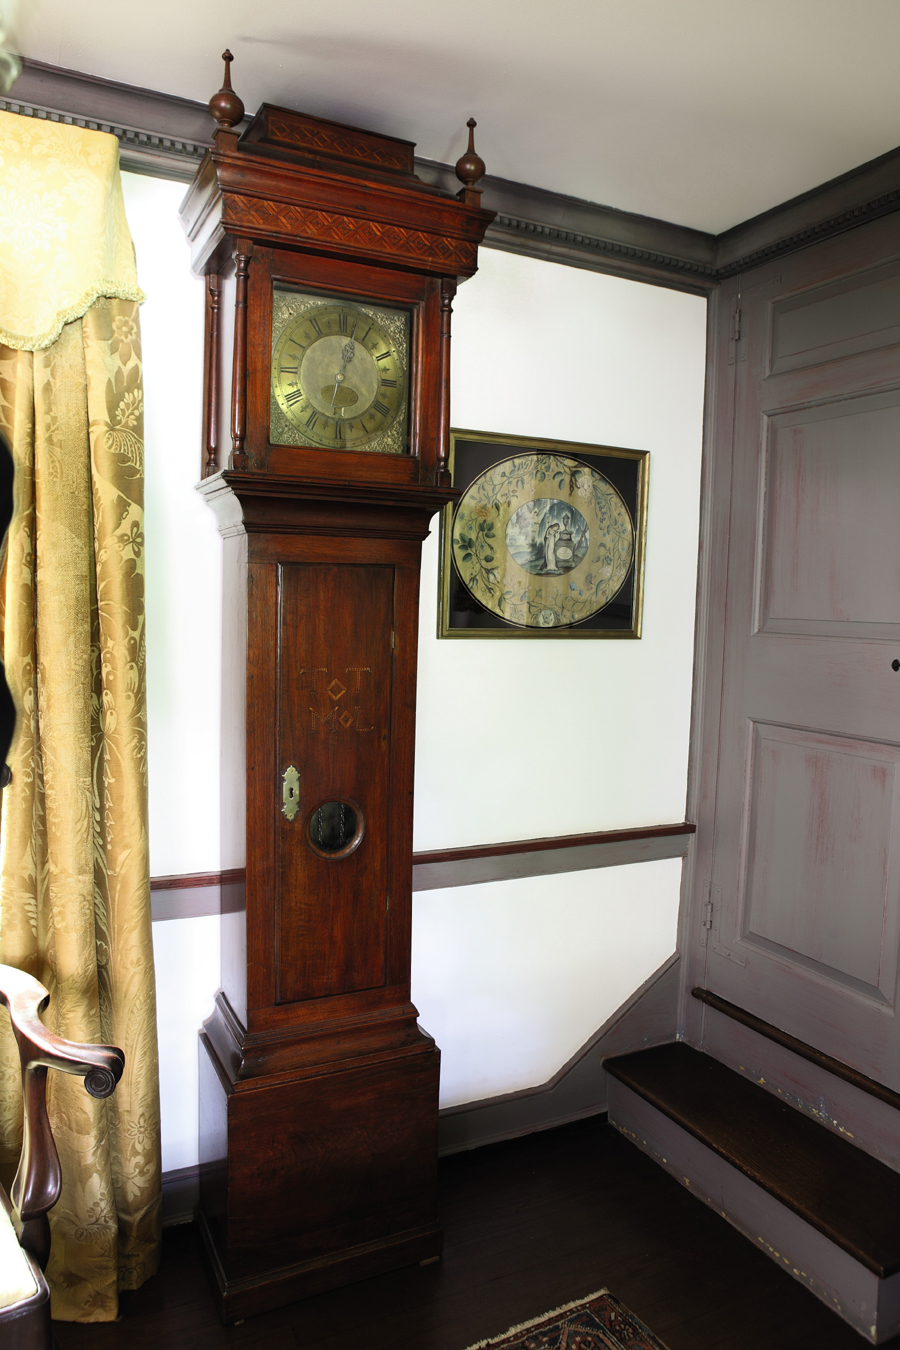 This choice, early tall clock, $ 162,500 ($ 50/75,000), with Israel Sack, Inc, provenance dates to around 1730 and descended in the Lewis family of Radnor Township, Penn. The works, by John Wood Sr of Philadelphia, are housed in a case attributed to Thomas Thomas. Anita Schorsch loved embroidery, especially memorials. Signed by Samuel Folwell of Philadelphia and dated 1799, the painted silk memorial to George Washington, right, made $ 47,500 ($ 8/12,000).